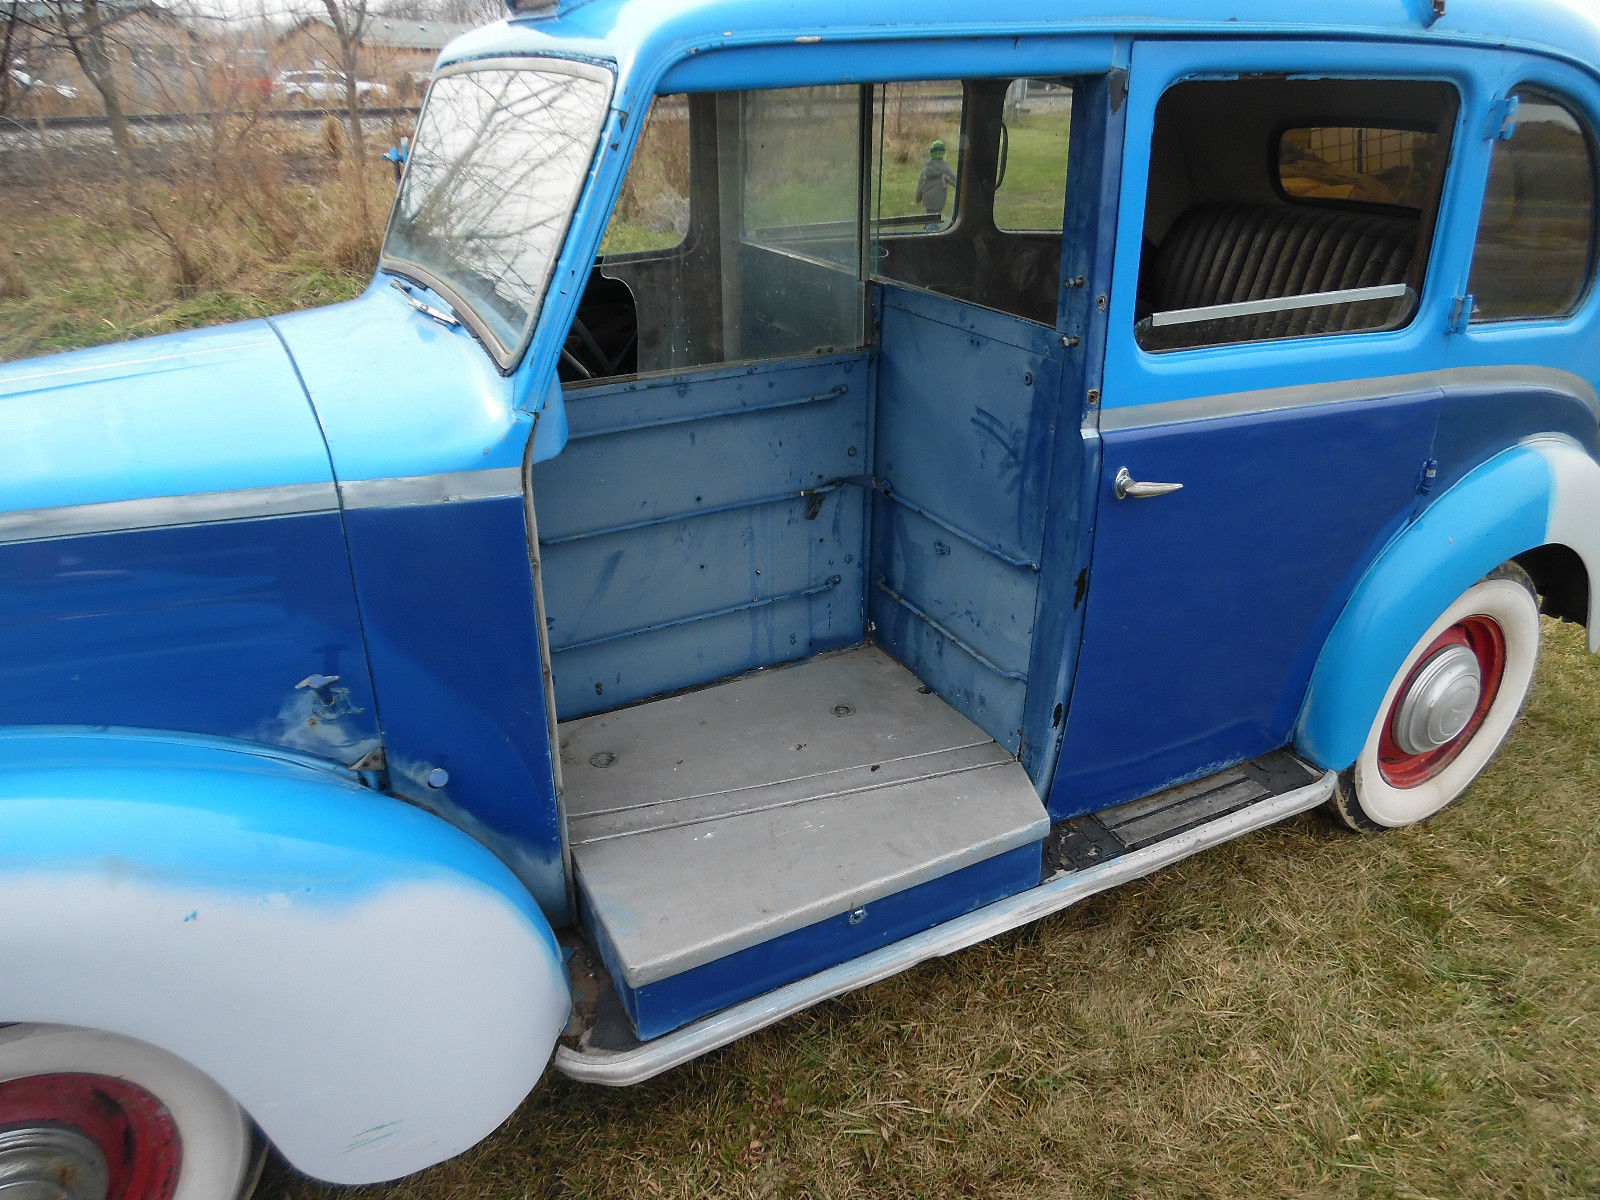 1955 austin fx3 london taxi cab running project vintage rare collector promotion. Black Bedroom Furniture Sets. Home Design Ideas